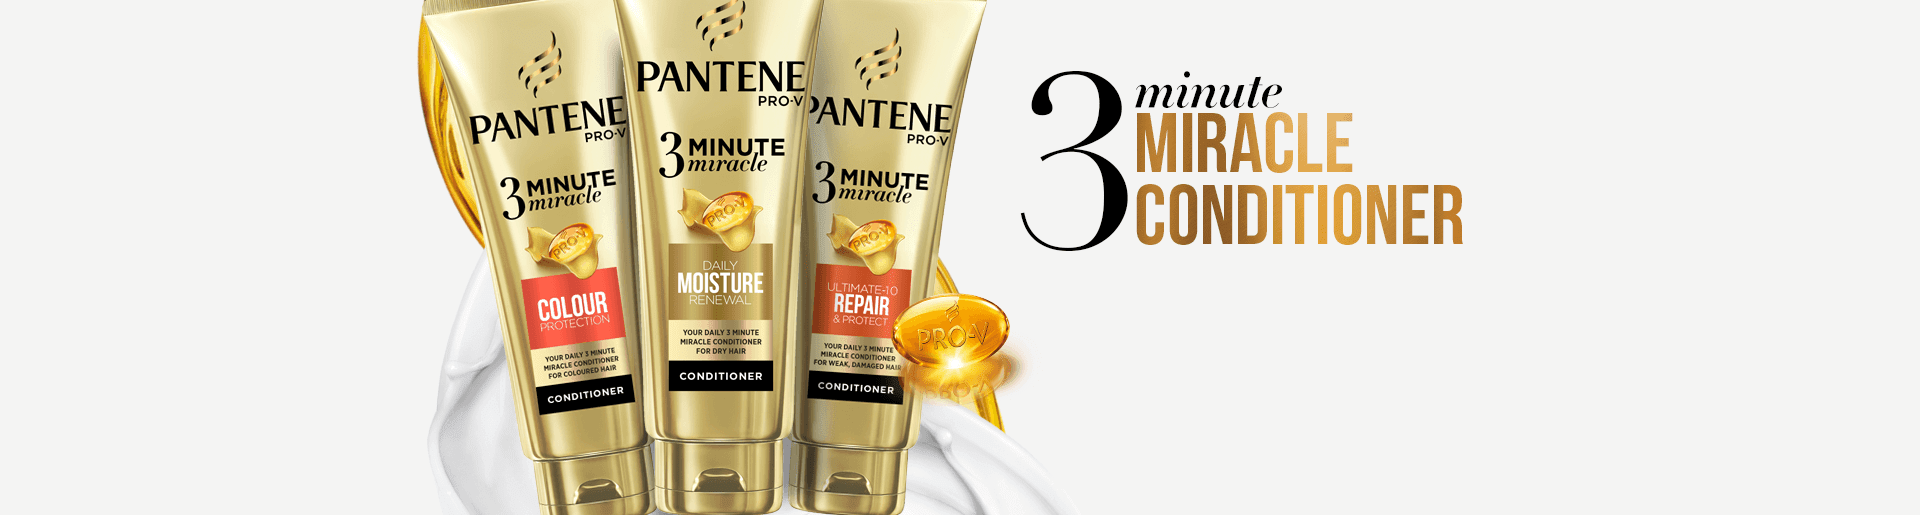 3-Minute-Miracle-Conditioner